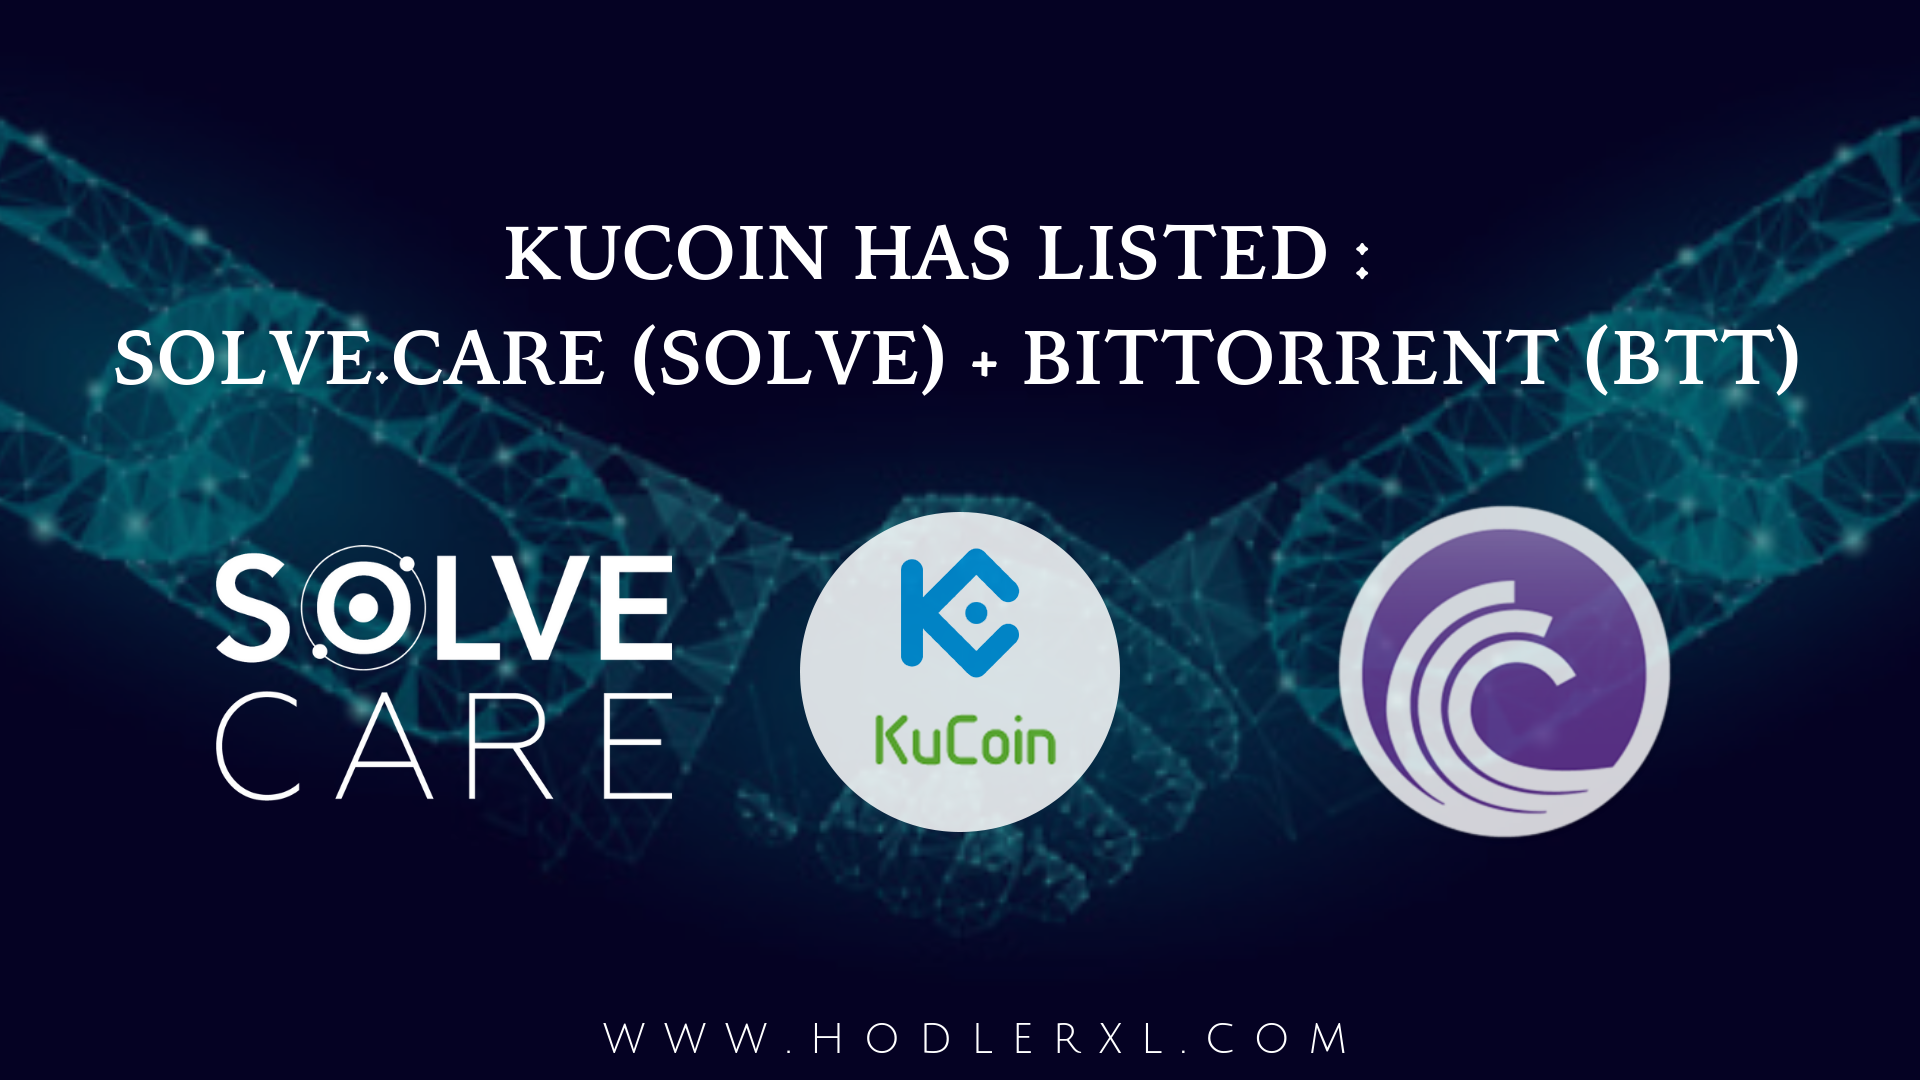 Kucoin has Listed _ Solve.Care (SOLVE) + BitTorrent (BTT)